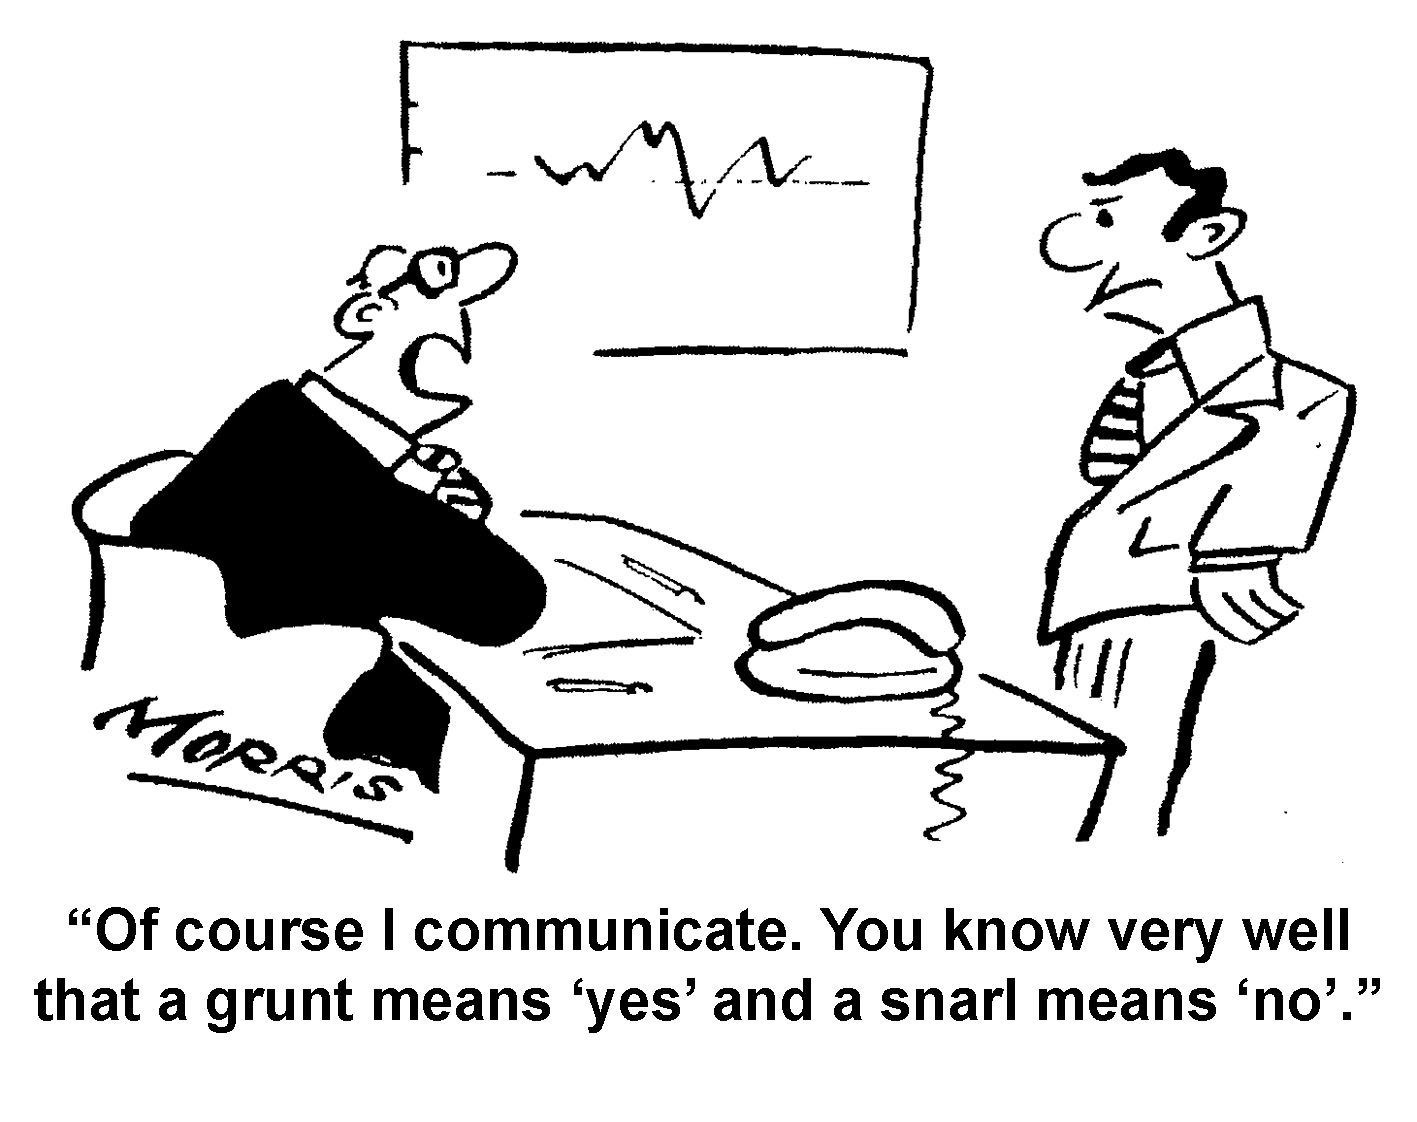 Communication management business cartoons